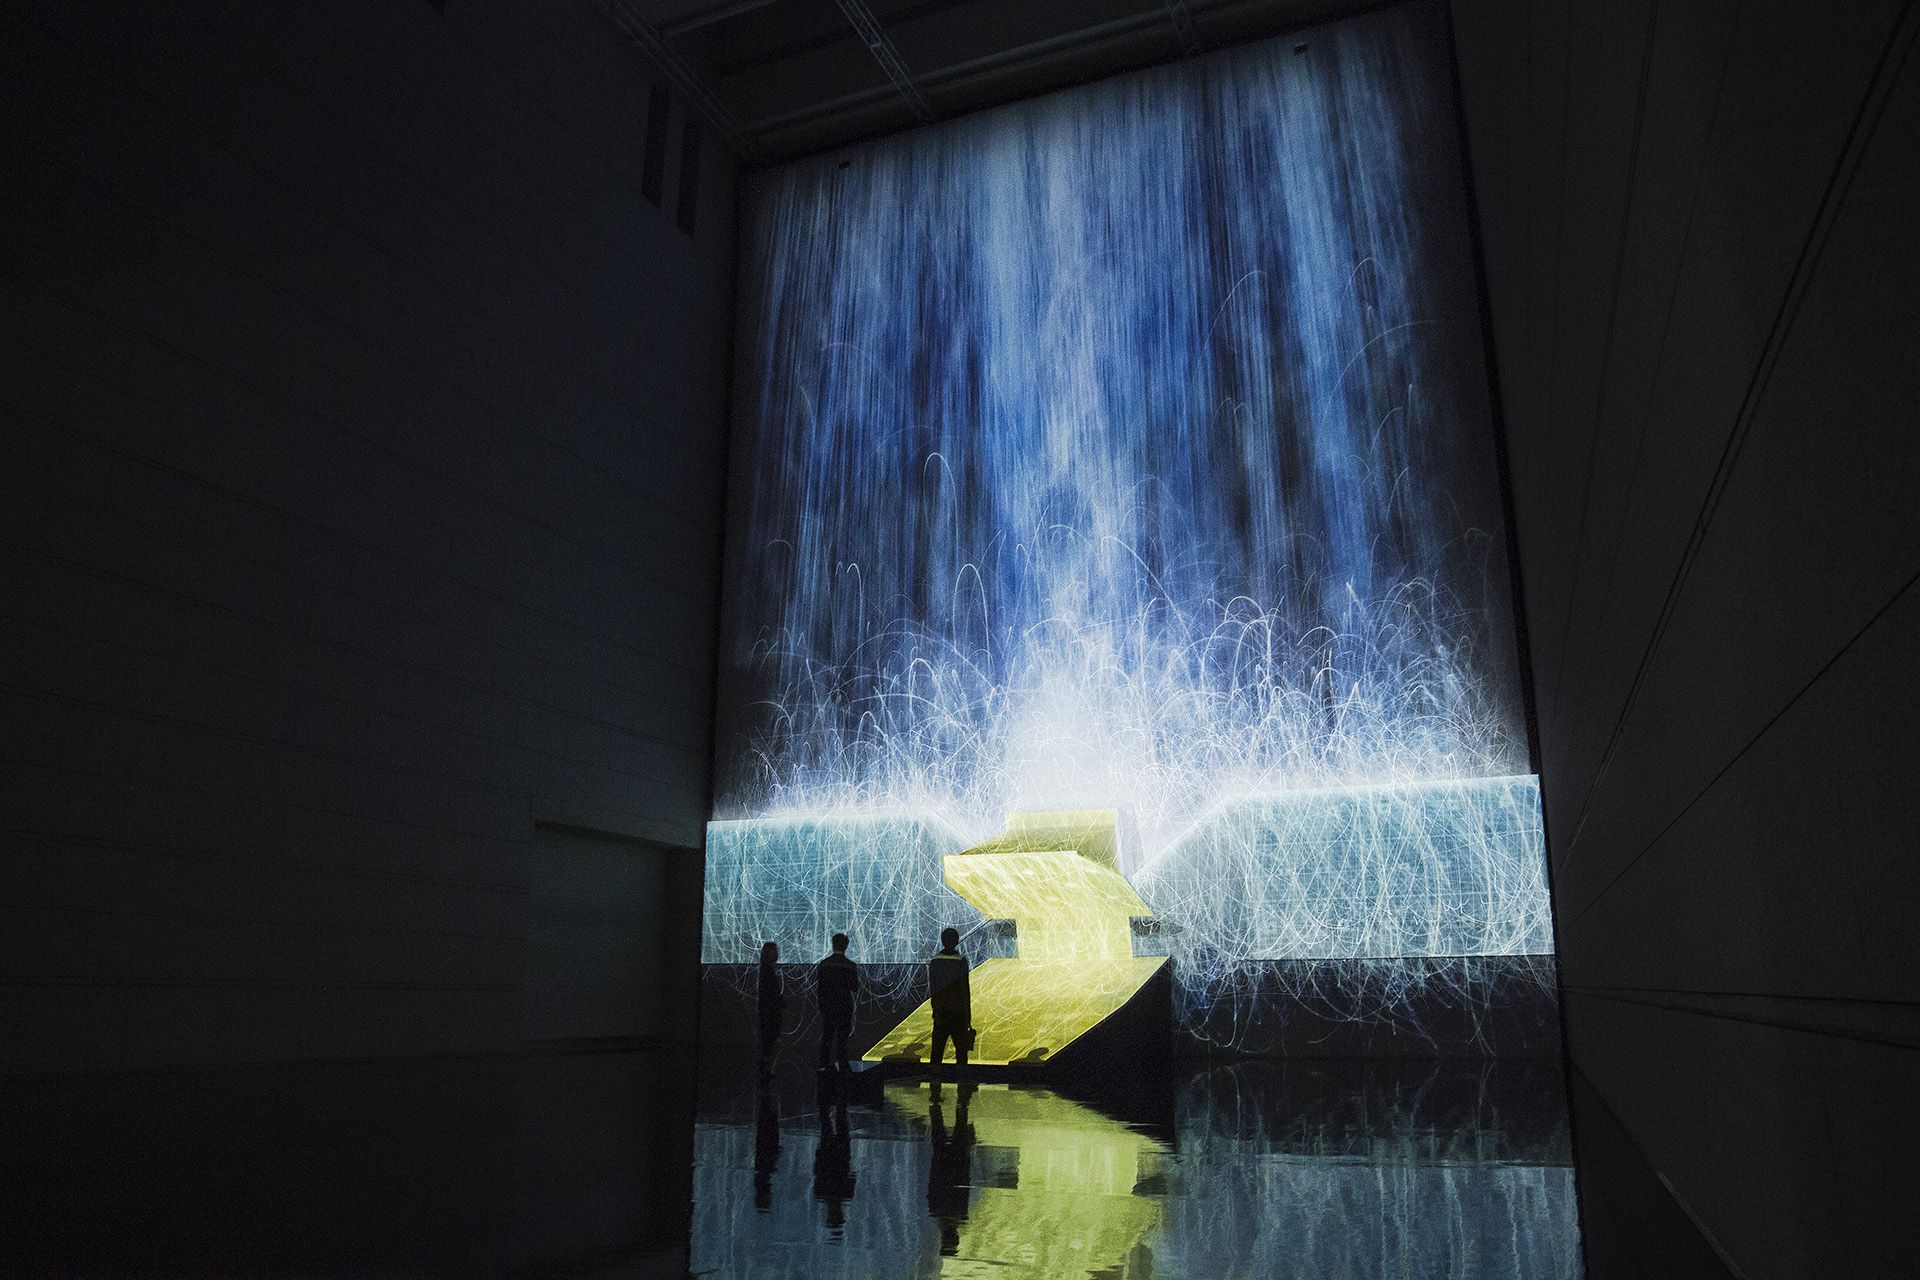 Digital Waterfalls With Projection Mapping Projection Mapping - Projection mapping turns chapel into stunning work of contemporary art